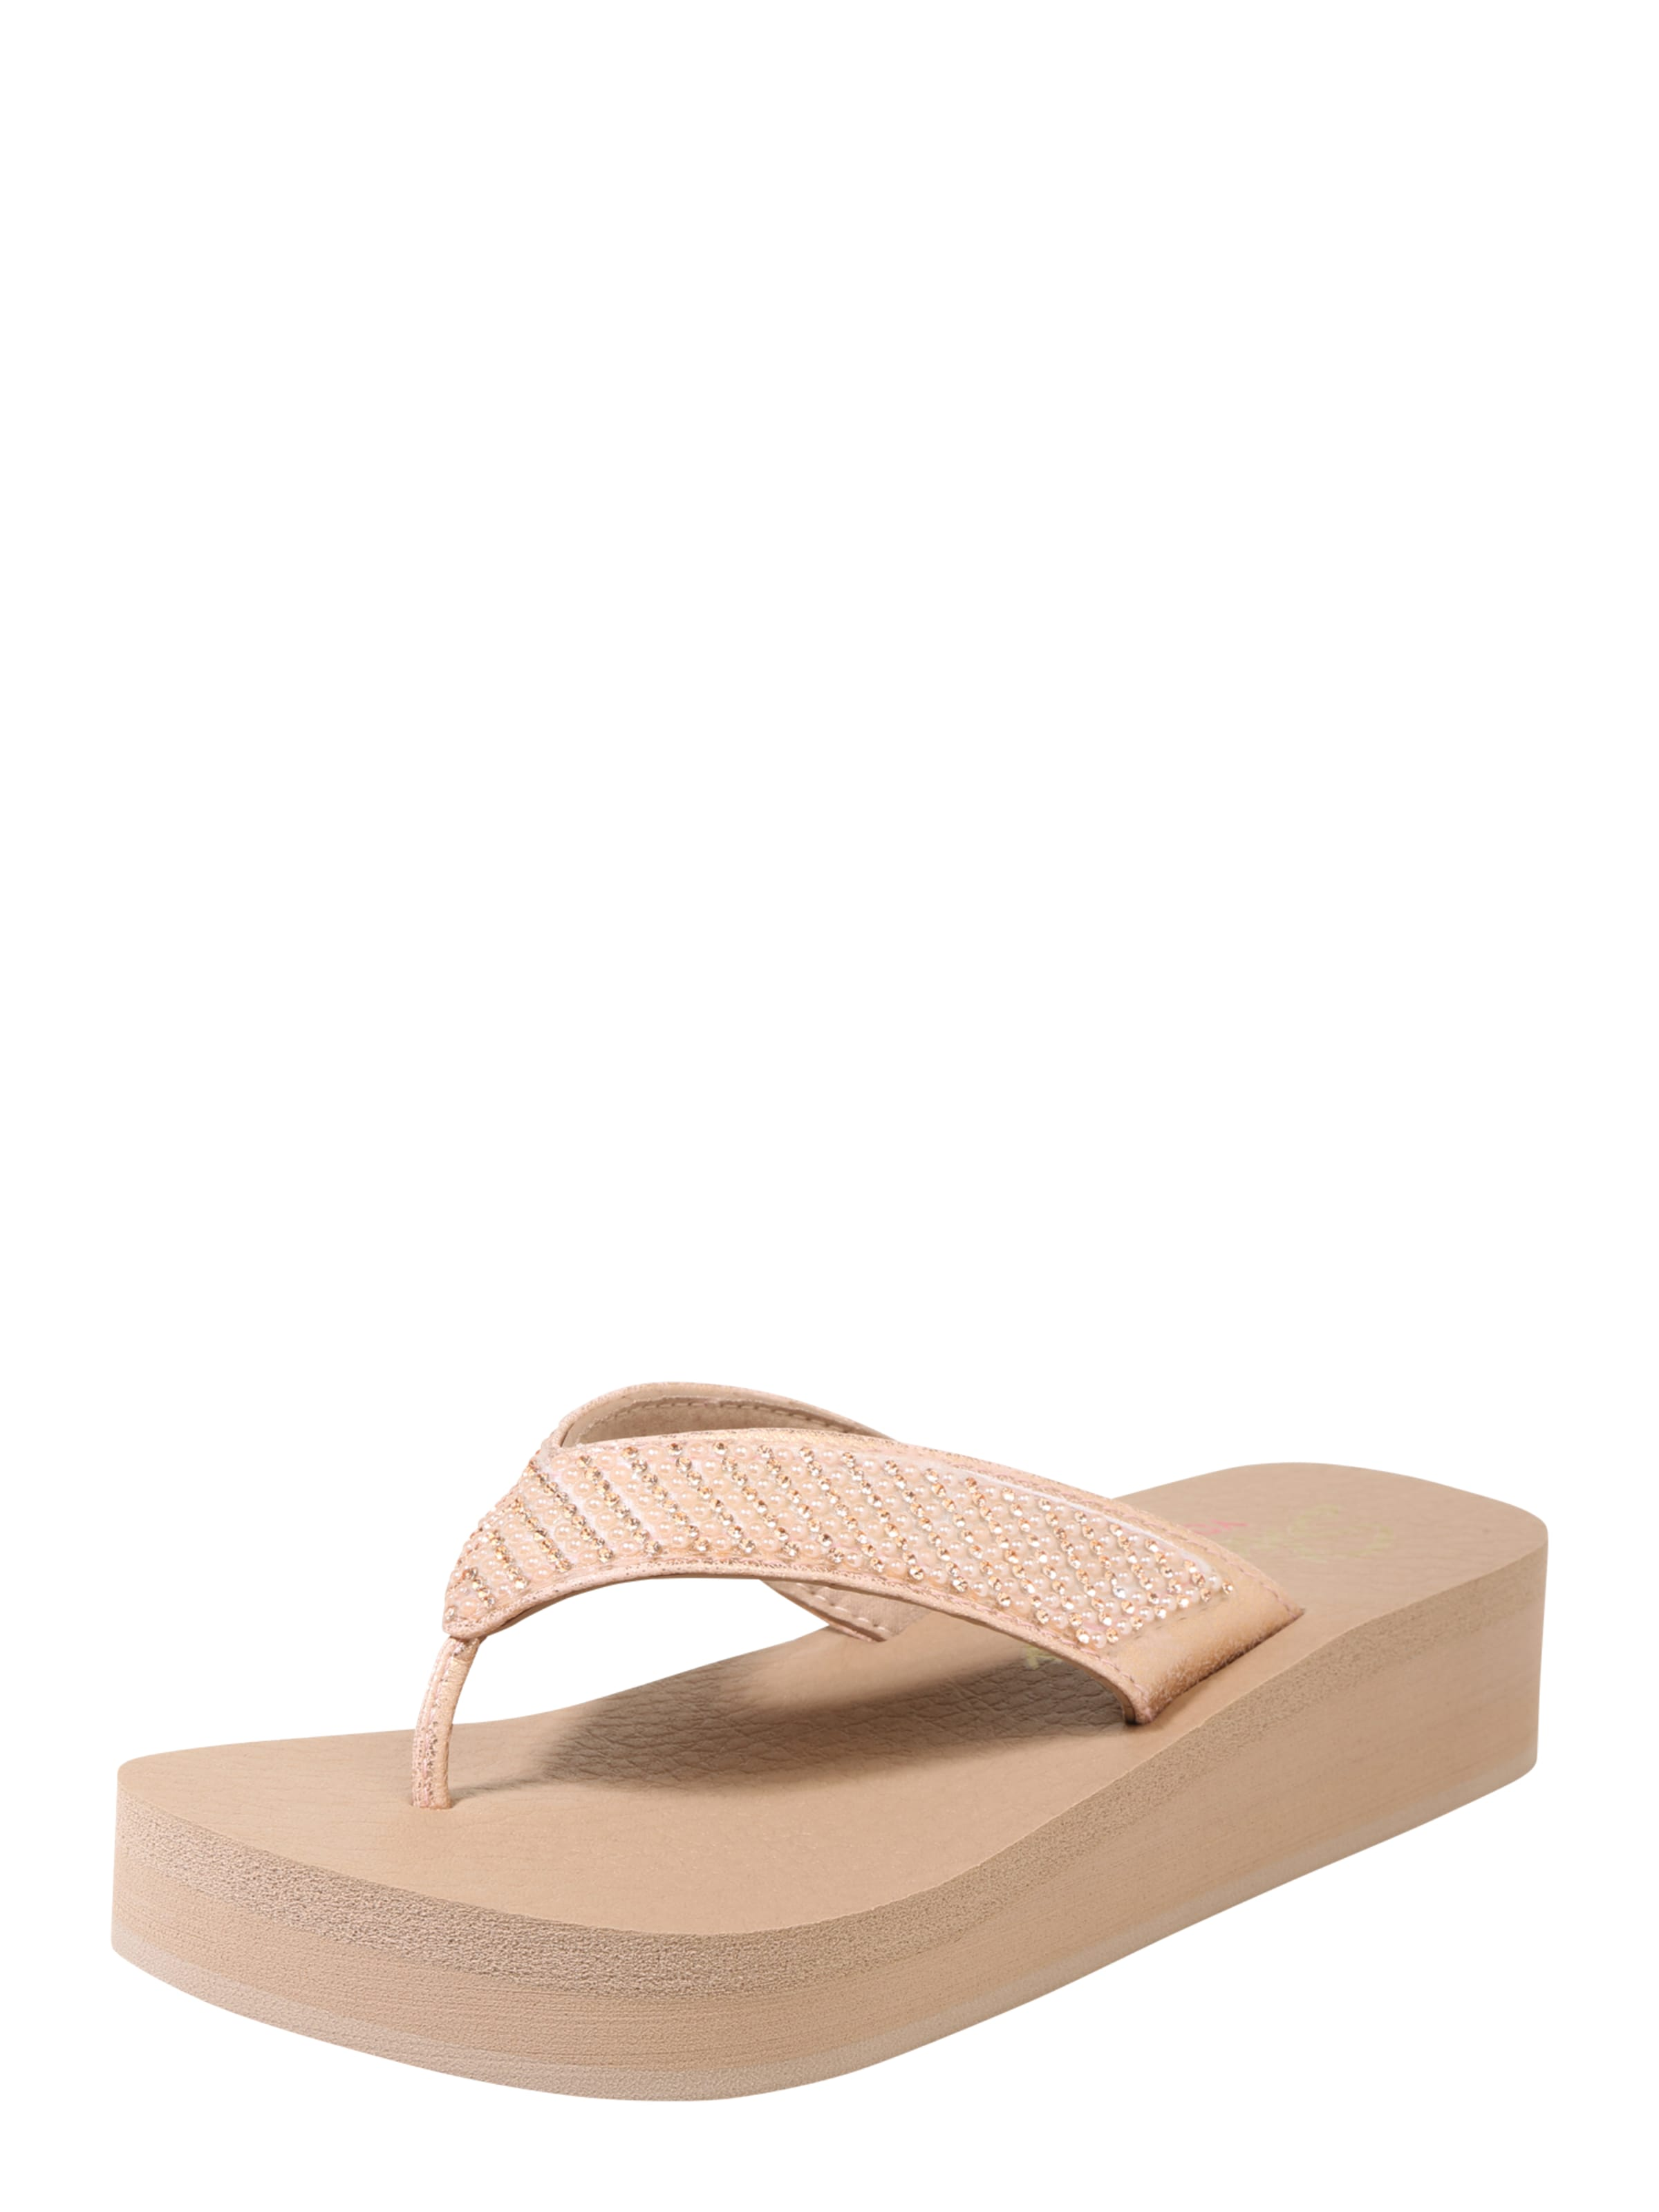 Skechers Teenslipper Rosé 'yoga String' vi2bB4kC72